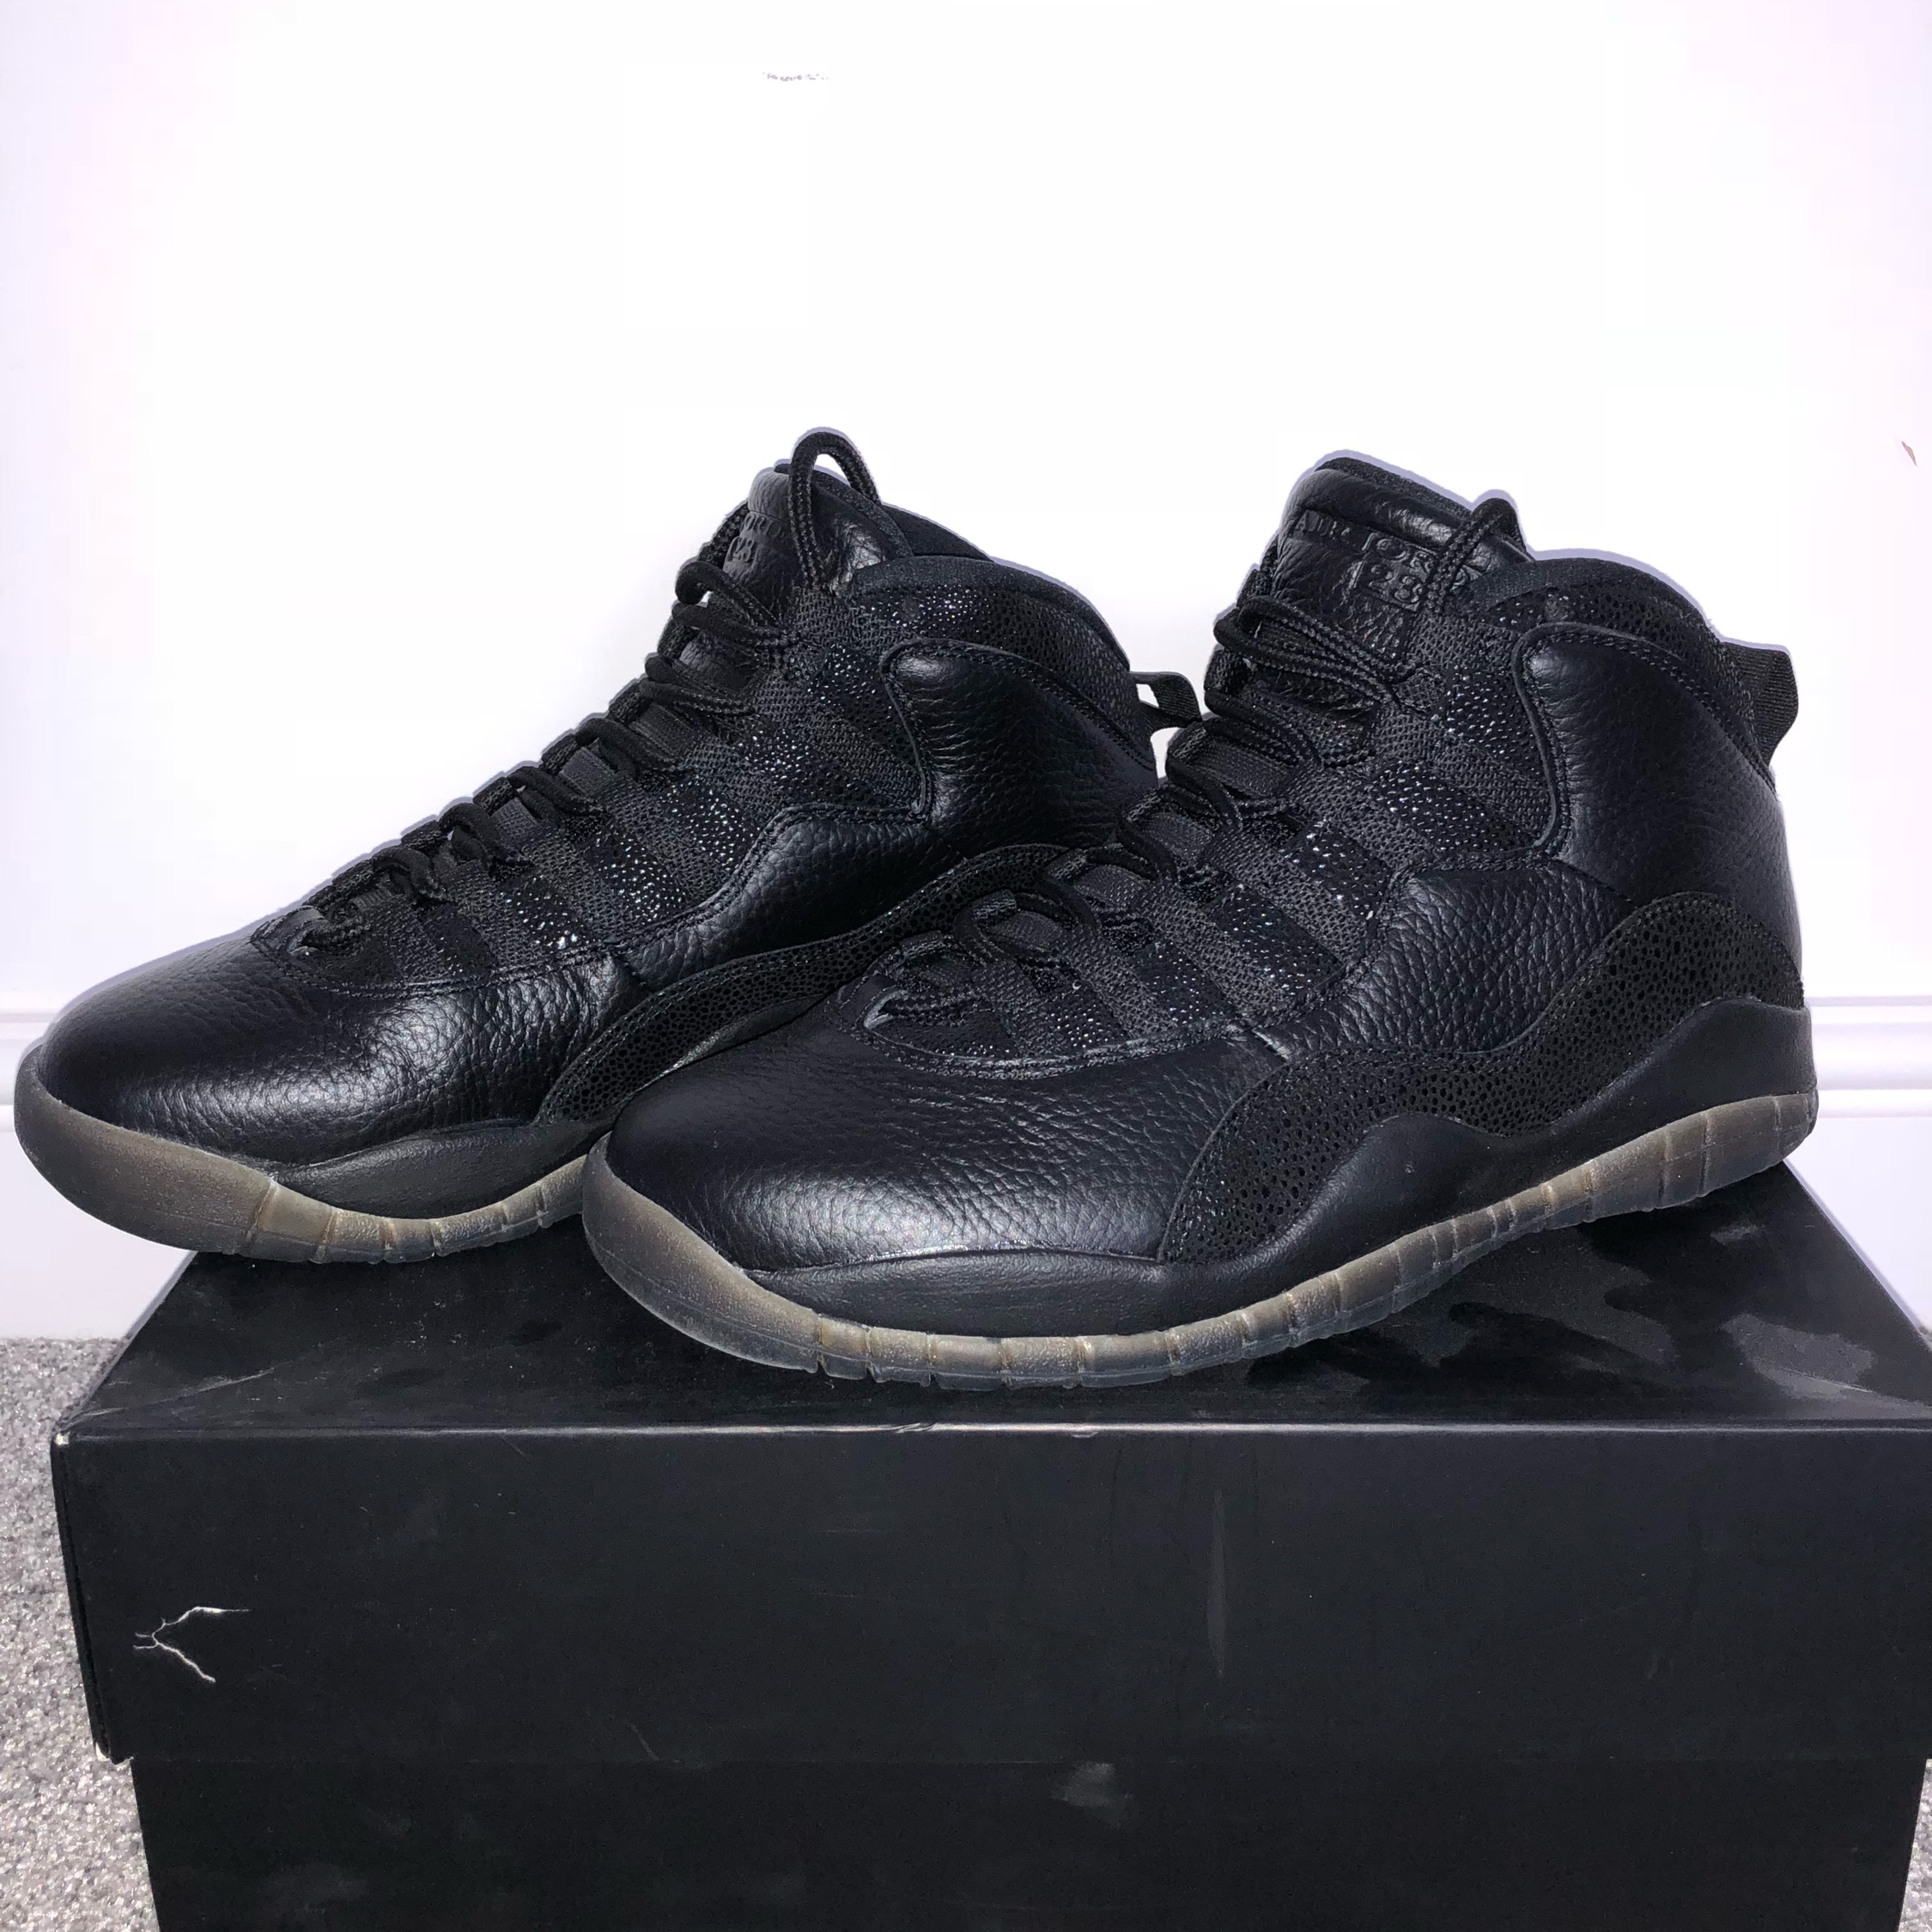 separation shoes ca54a 5d1f9 Jordan 10 Ovo 'Black'